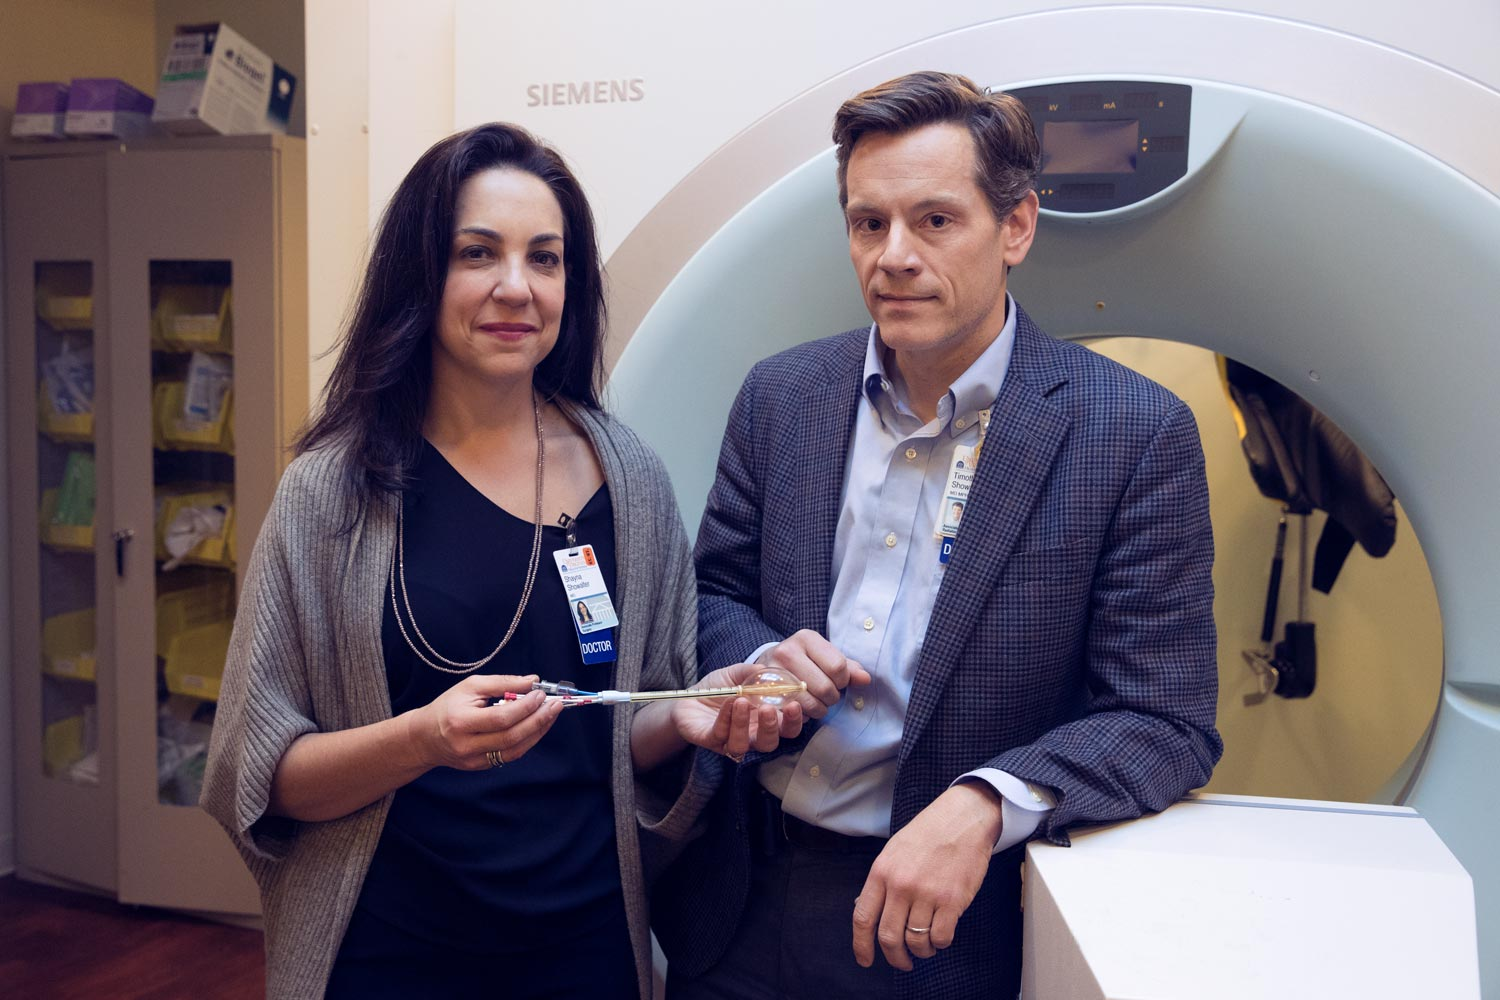 Drs. Shayna and Tim Showalter are leading an interdisciplinary effort to evaluate their new radiation approach for treating early-stage breast cancer.